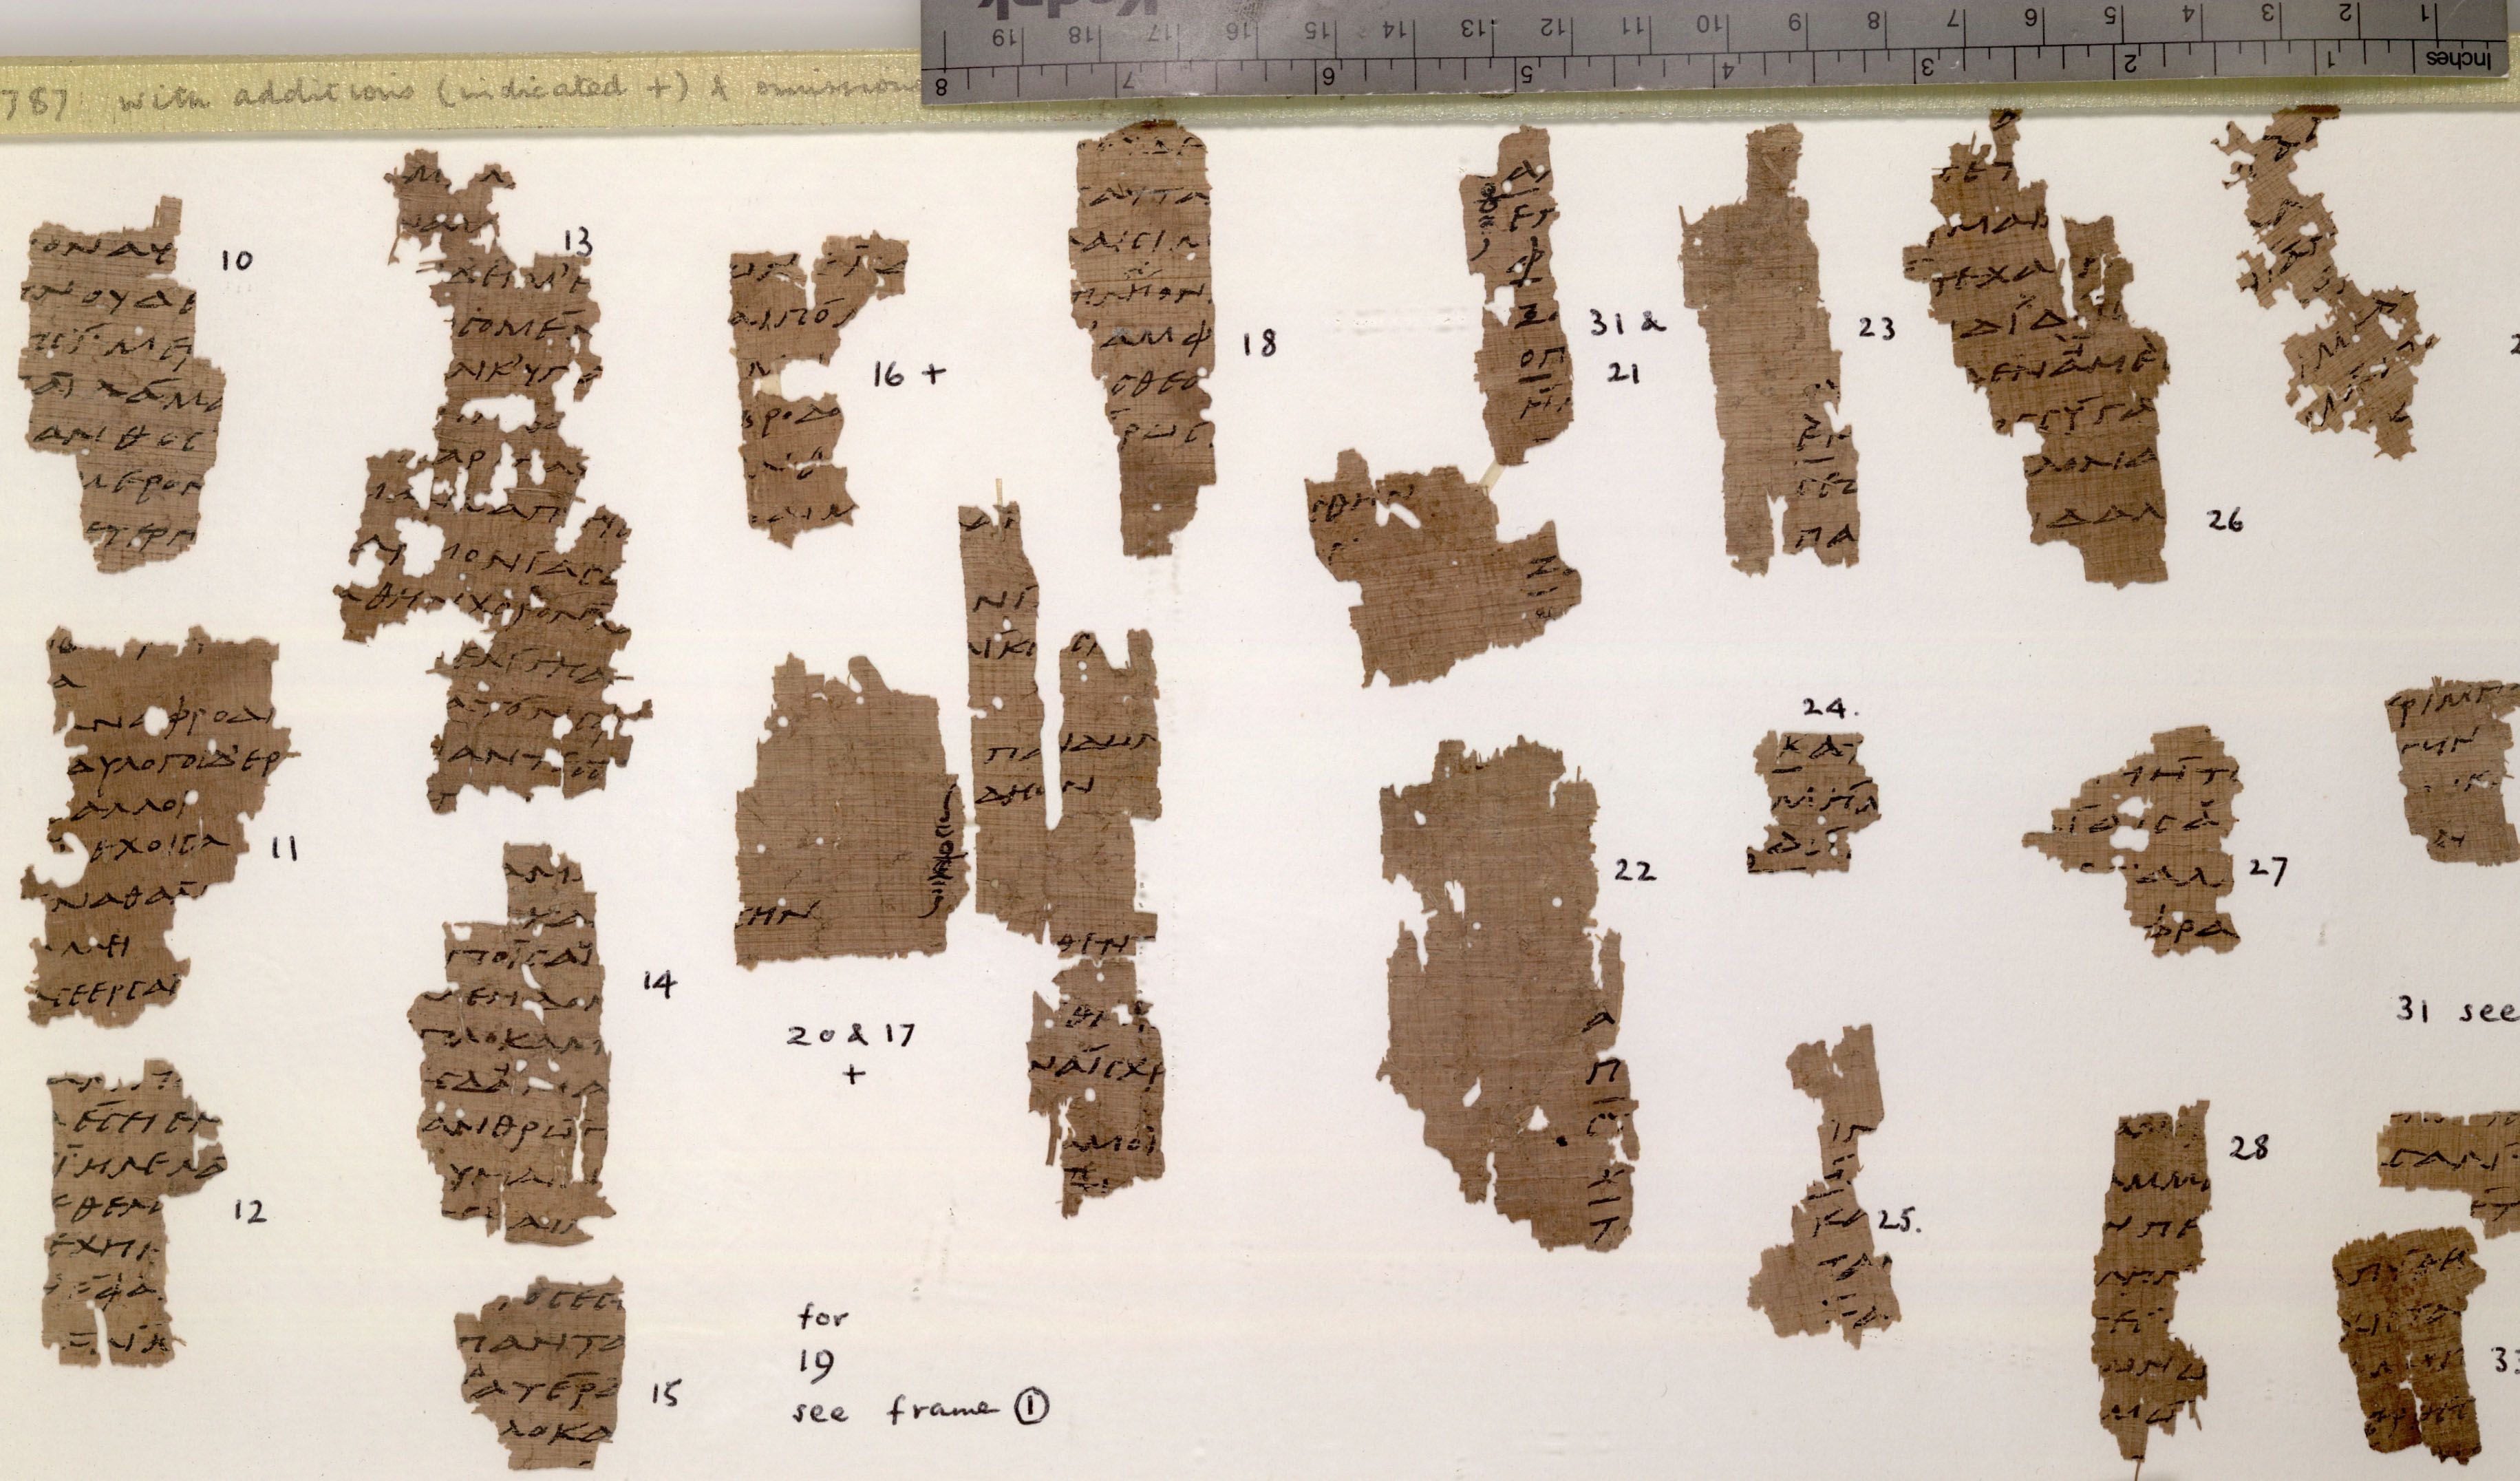 papyrus fragments, poetry by sappho (615 - 550 b.c.)